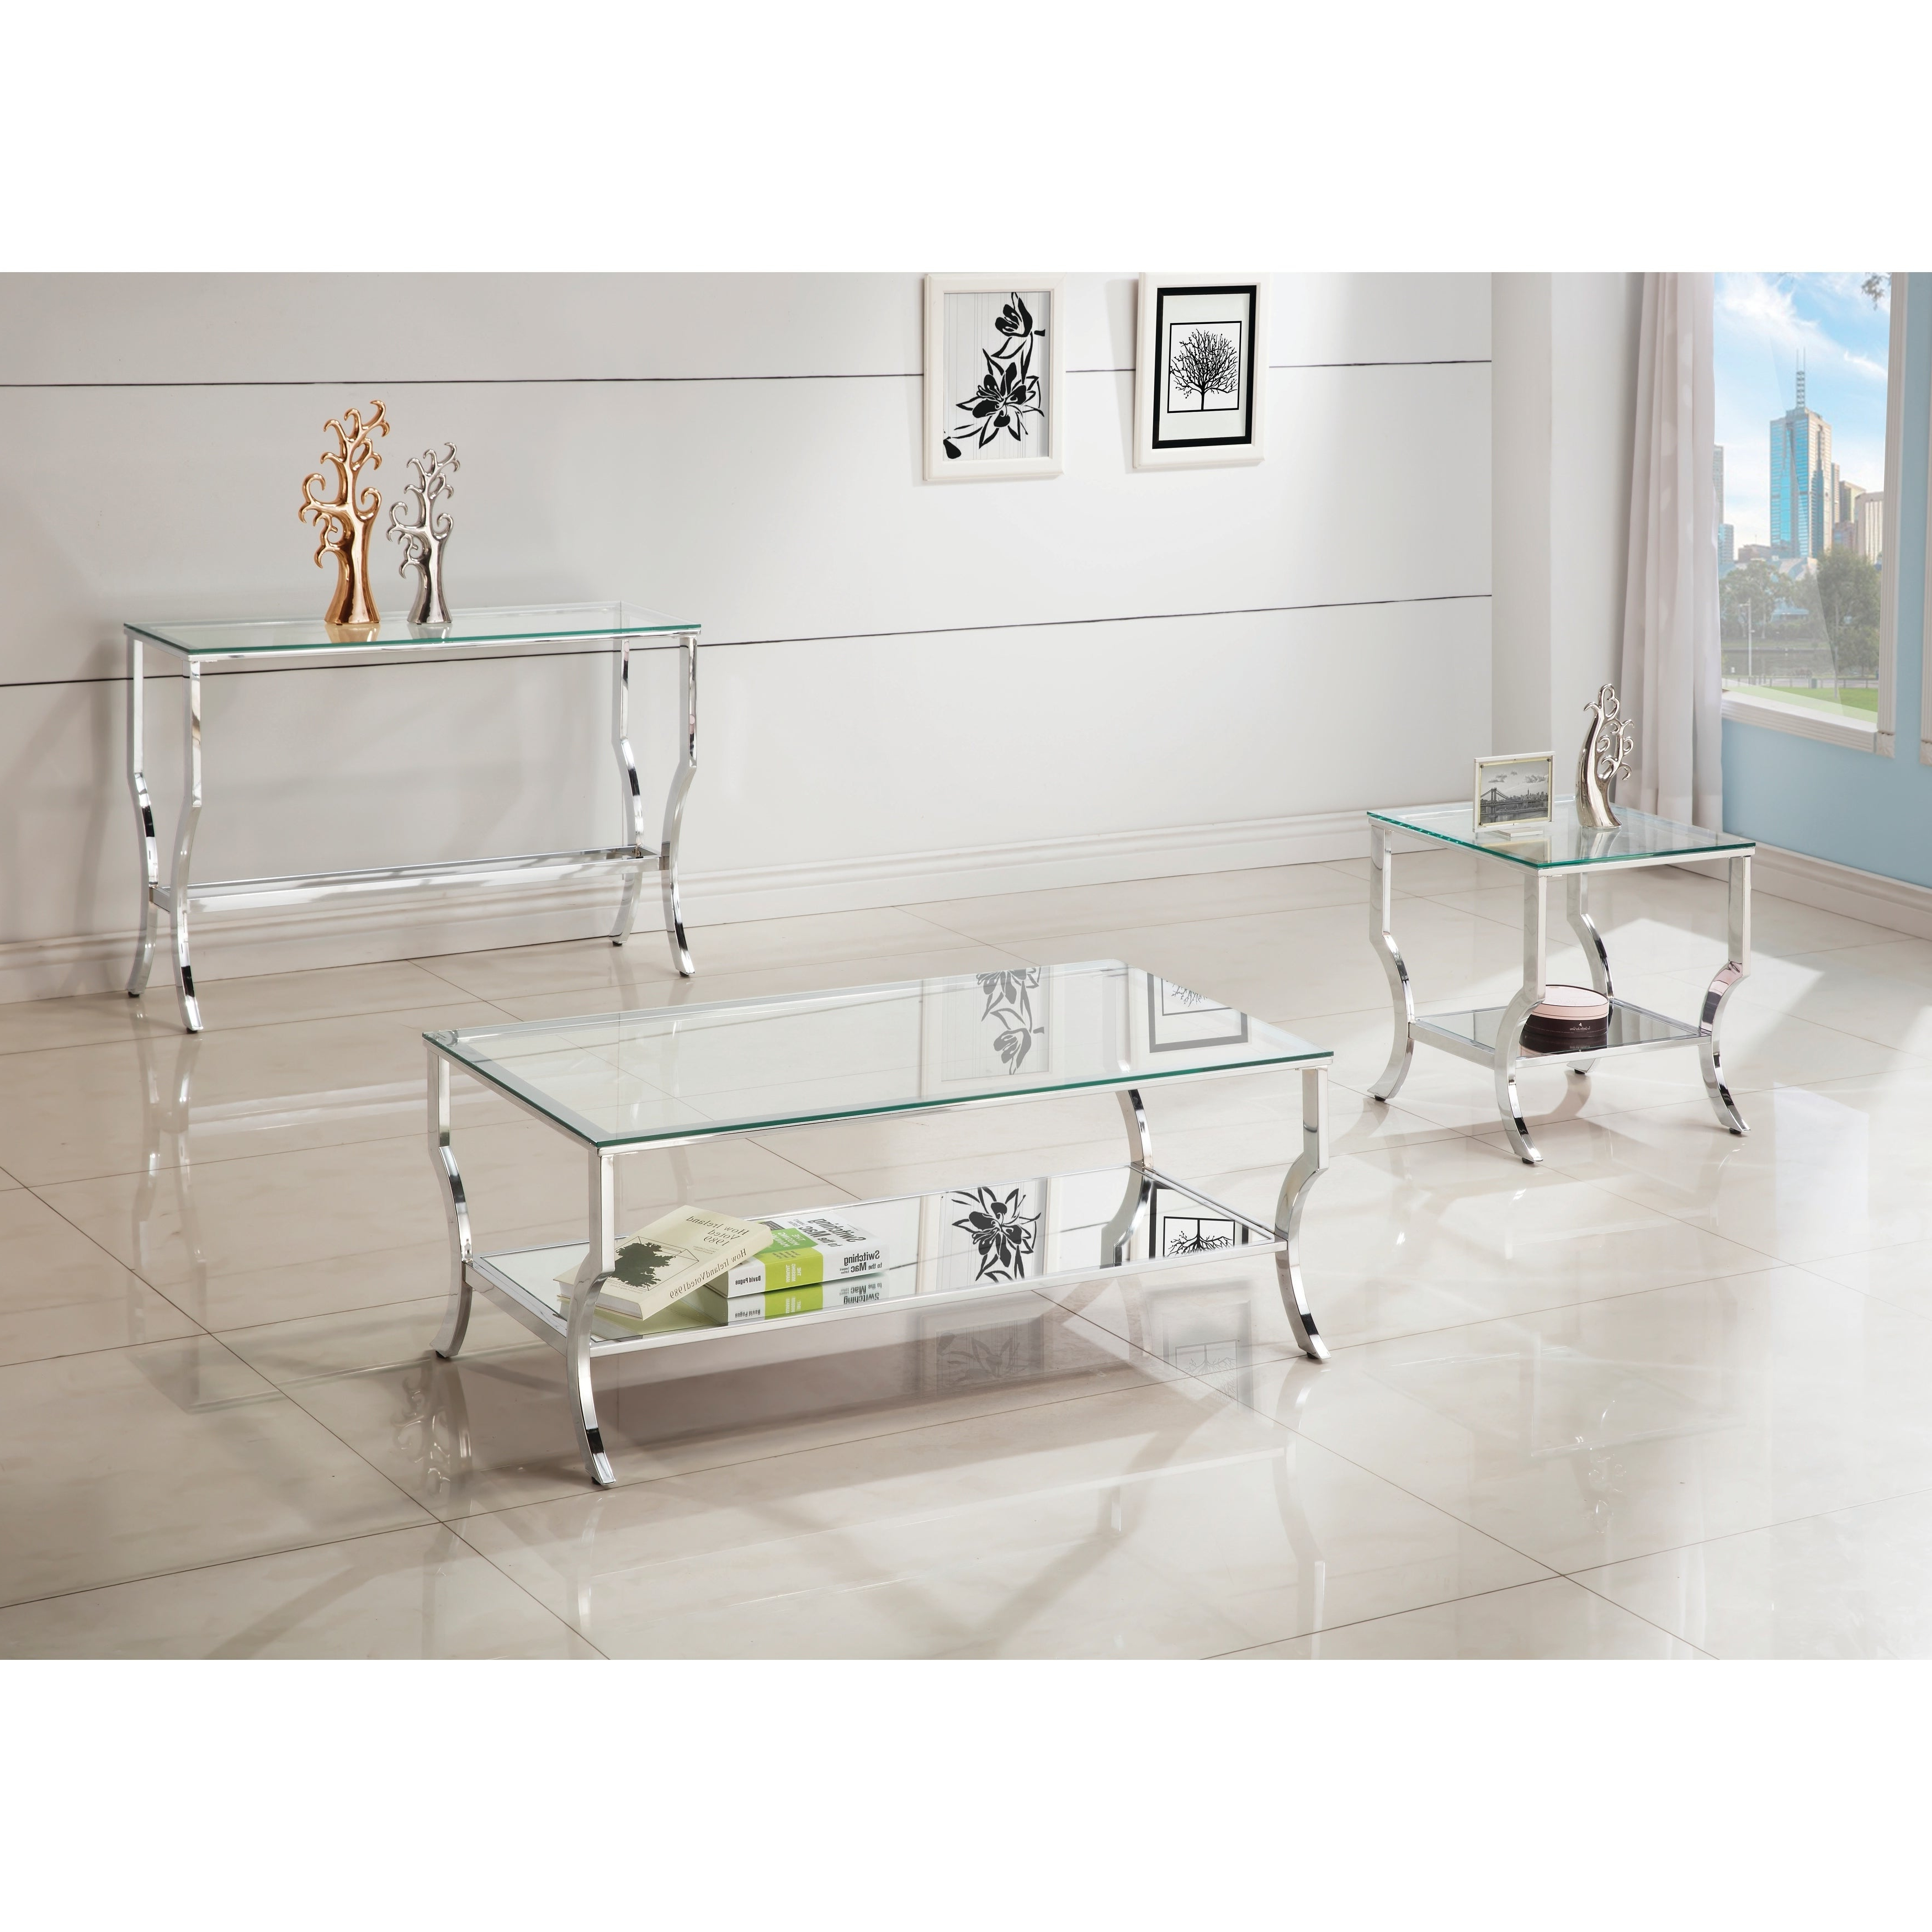 """Well Liked Contemporary Chrome Glass Top And Mirror Shelf Coffee Tables Throughout Contemporary Chrome Glass Top And Mirror Shelf Coffee Table – 47.25"""" X  23.50"""" X  (View 19 of 20)"""